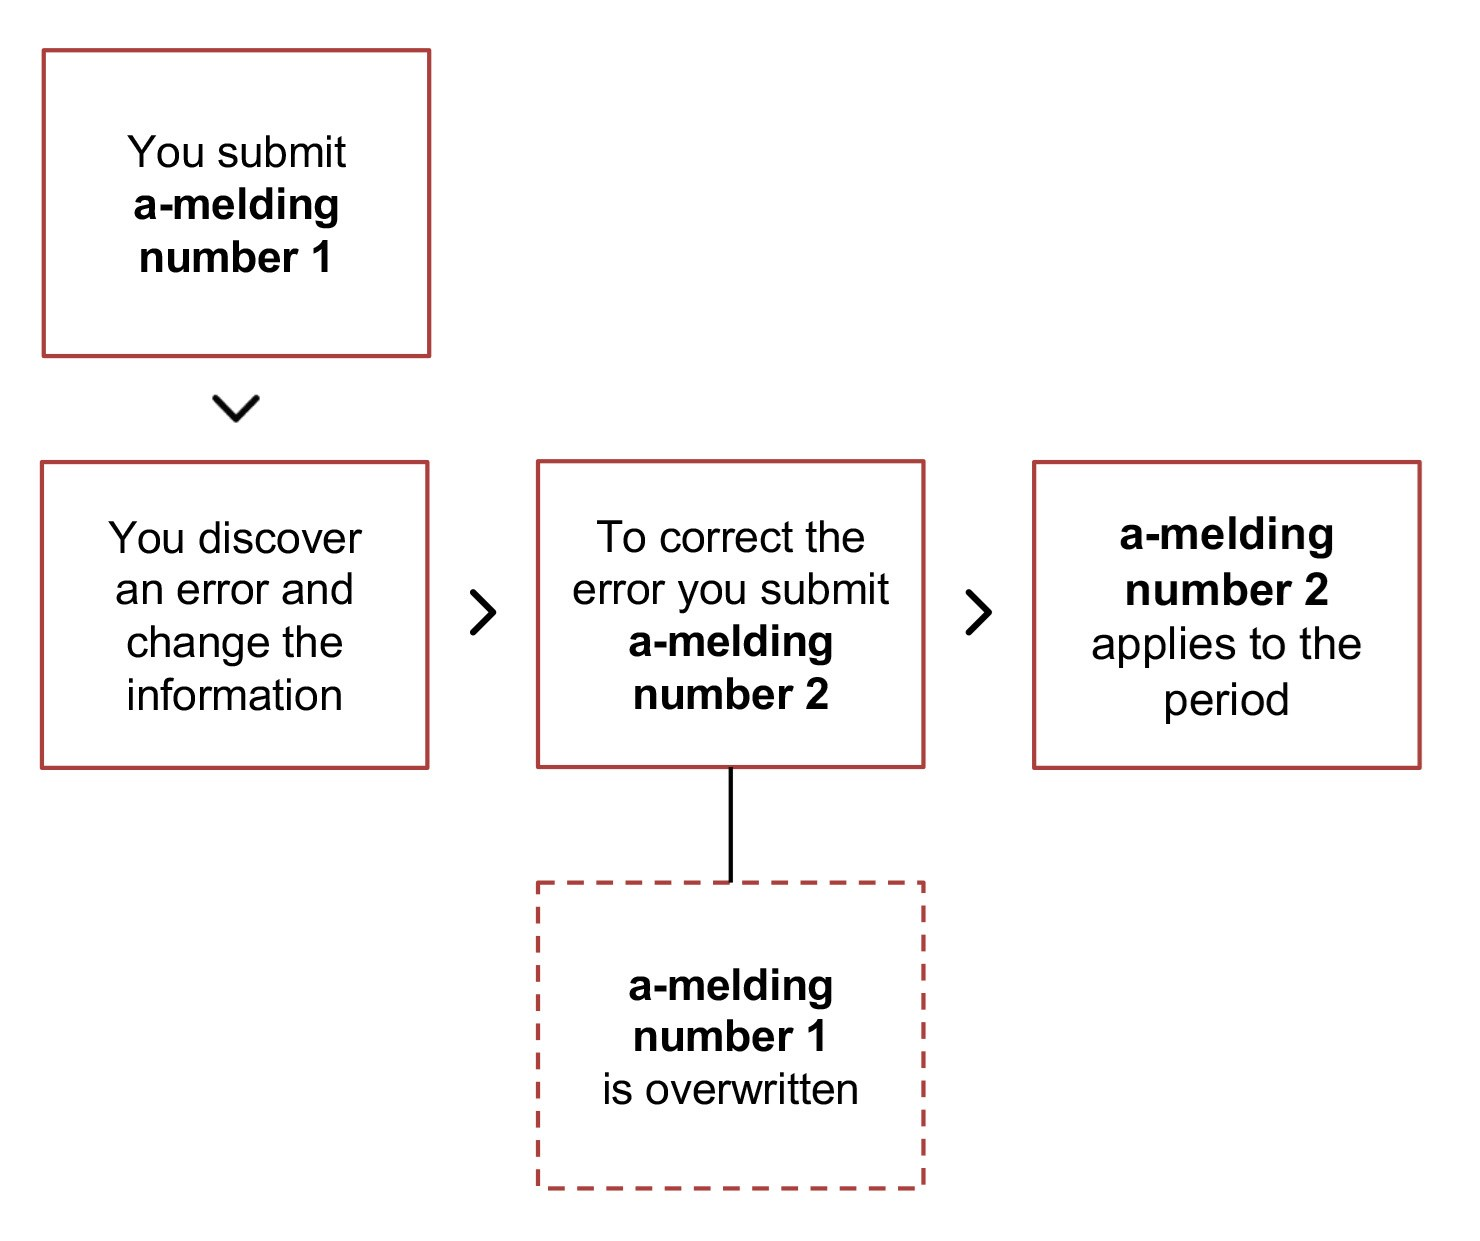 Diagram. Submit a-melding number 1. Correct errors or omissions. Submit a-melding number 2. A-melding 2 applies to the period. The text in the article explains this in more detail.